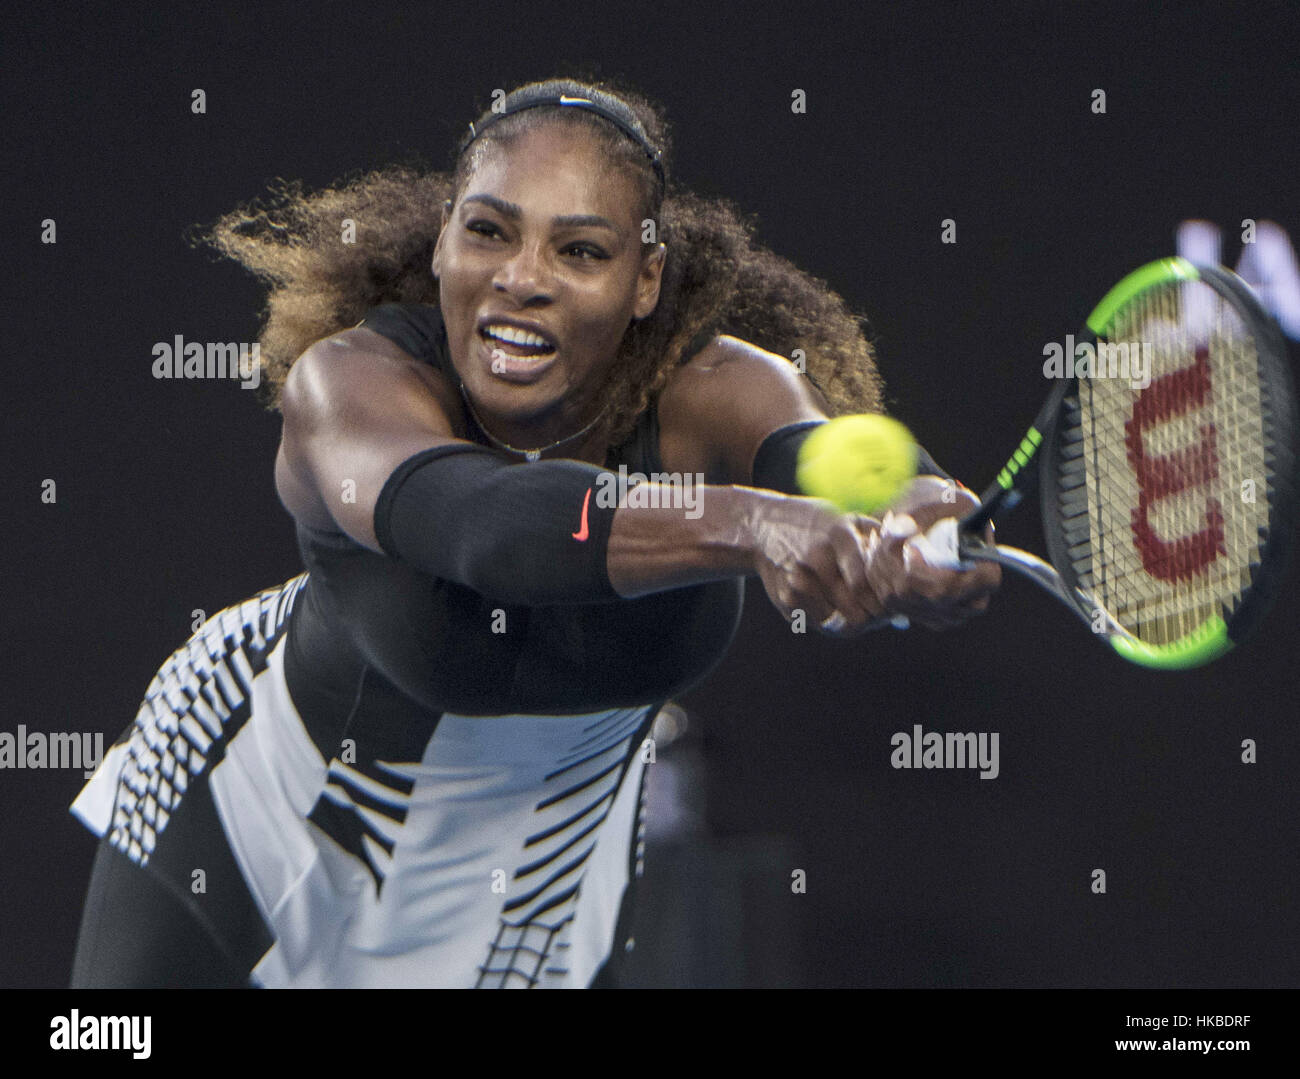 Melbourne, Australie. 28 janvier, 2017. United States' Serena Williams renvoie la balle pendant le dernier match Photo Stock